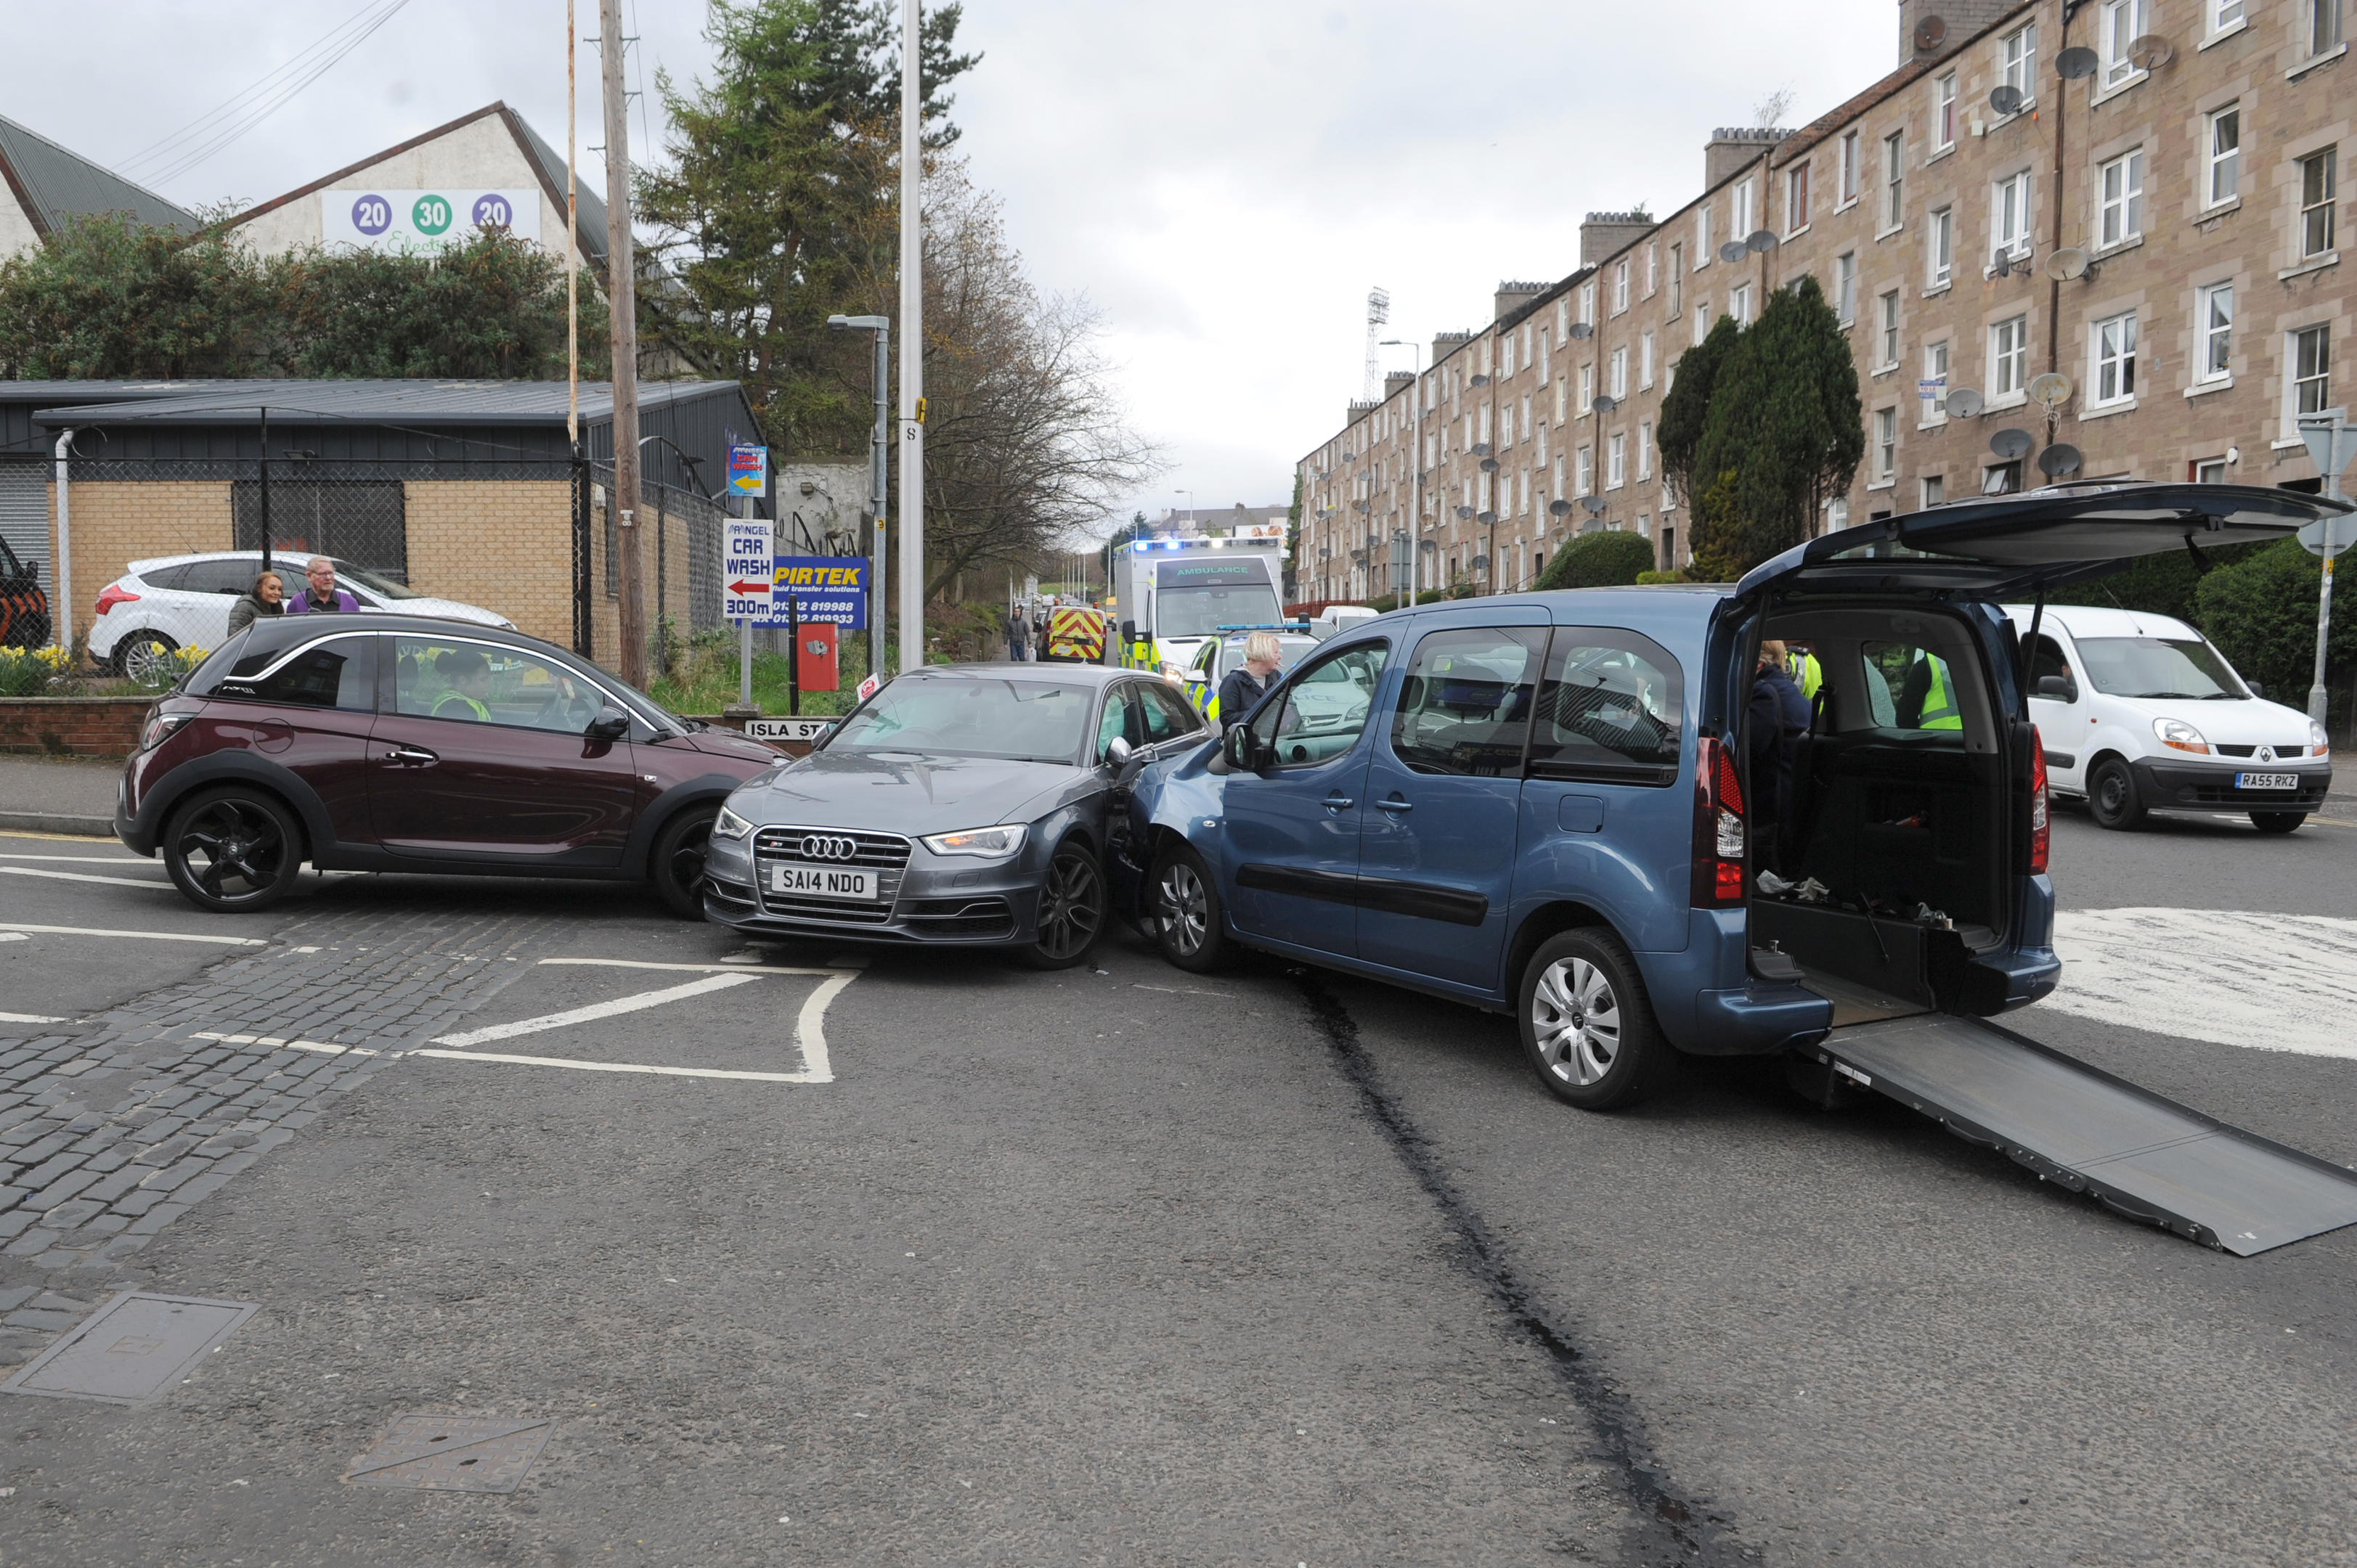 The accident occurred at the junction between Dens Road and North Isla Street